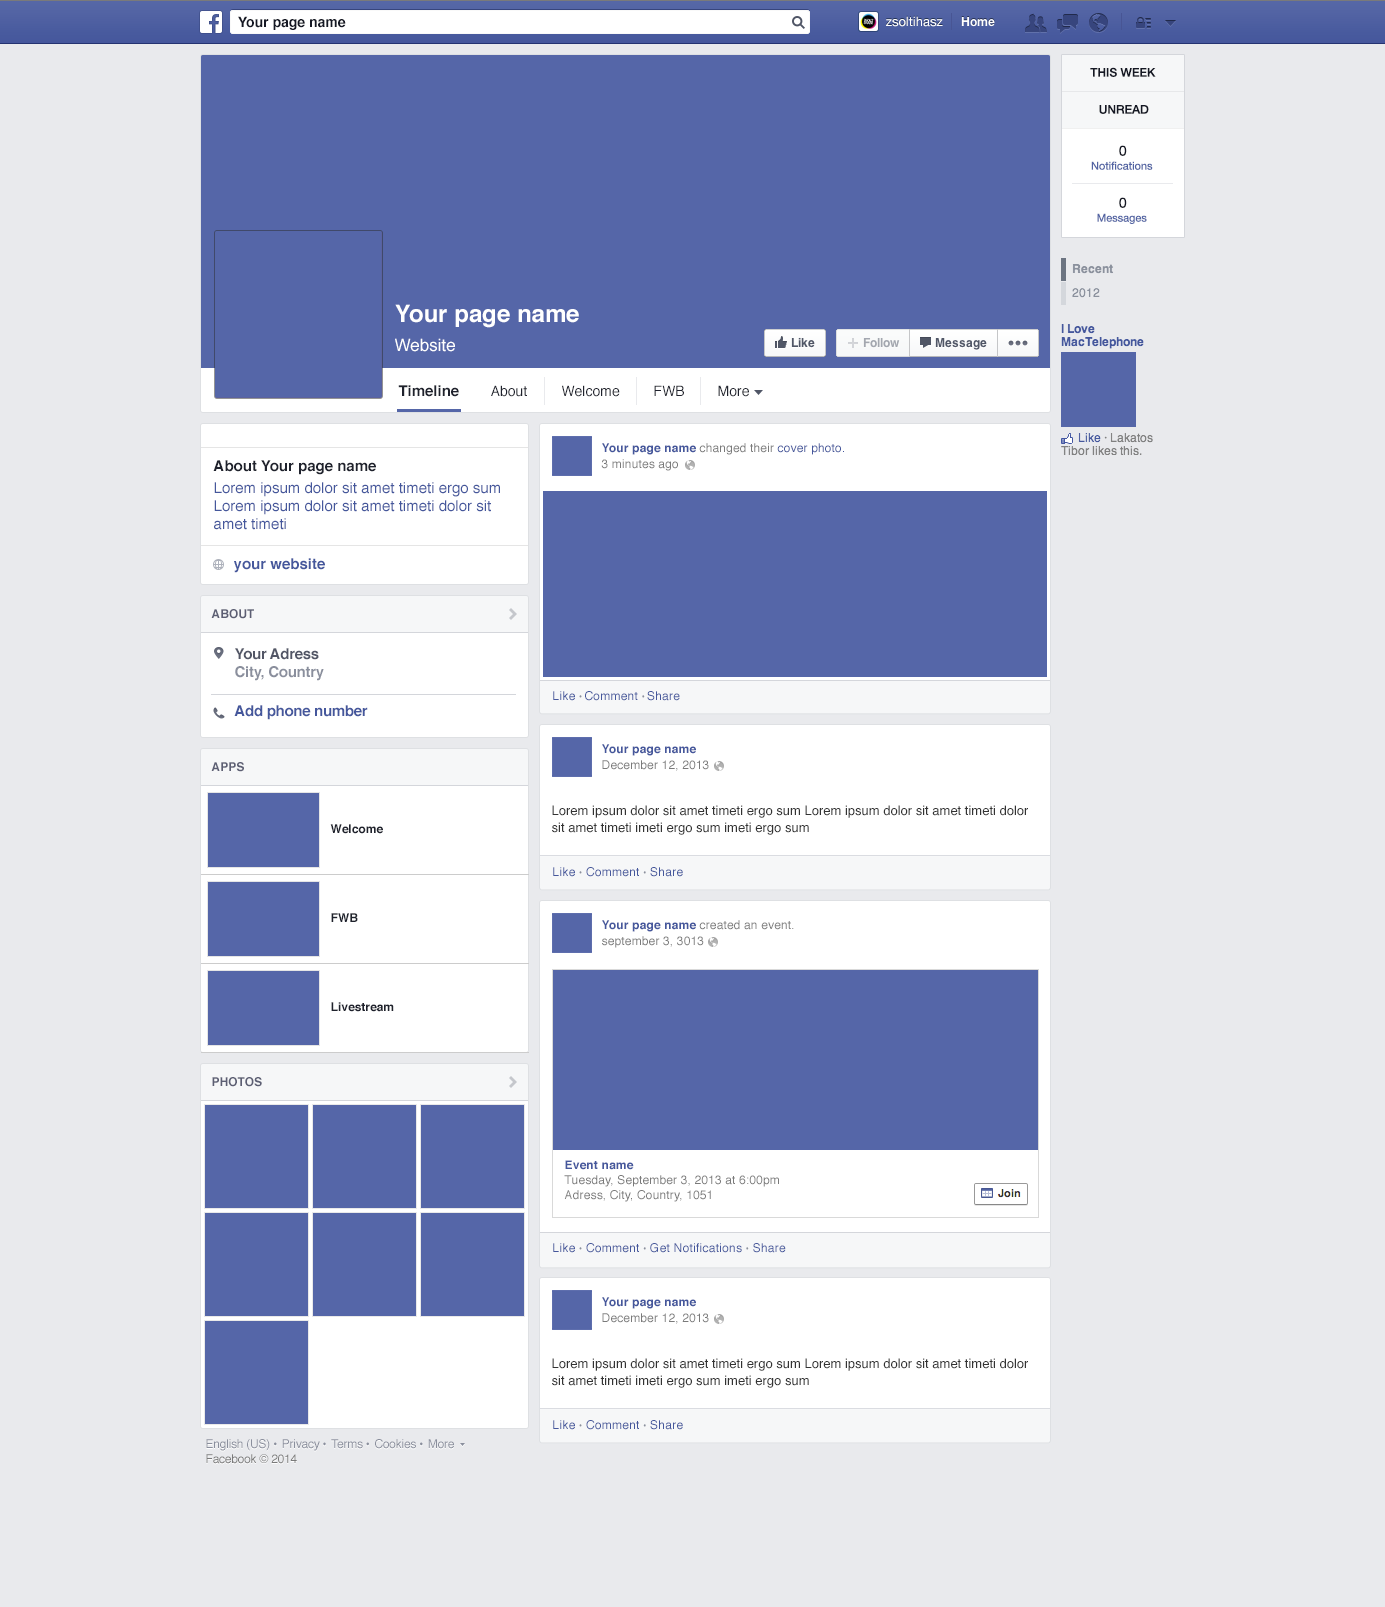 Blank Facebook Template - 12+ Free Word, PPT & PSD ...  |Blank Facebook Timeline Page